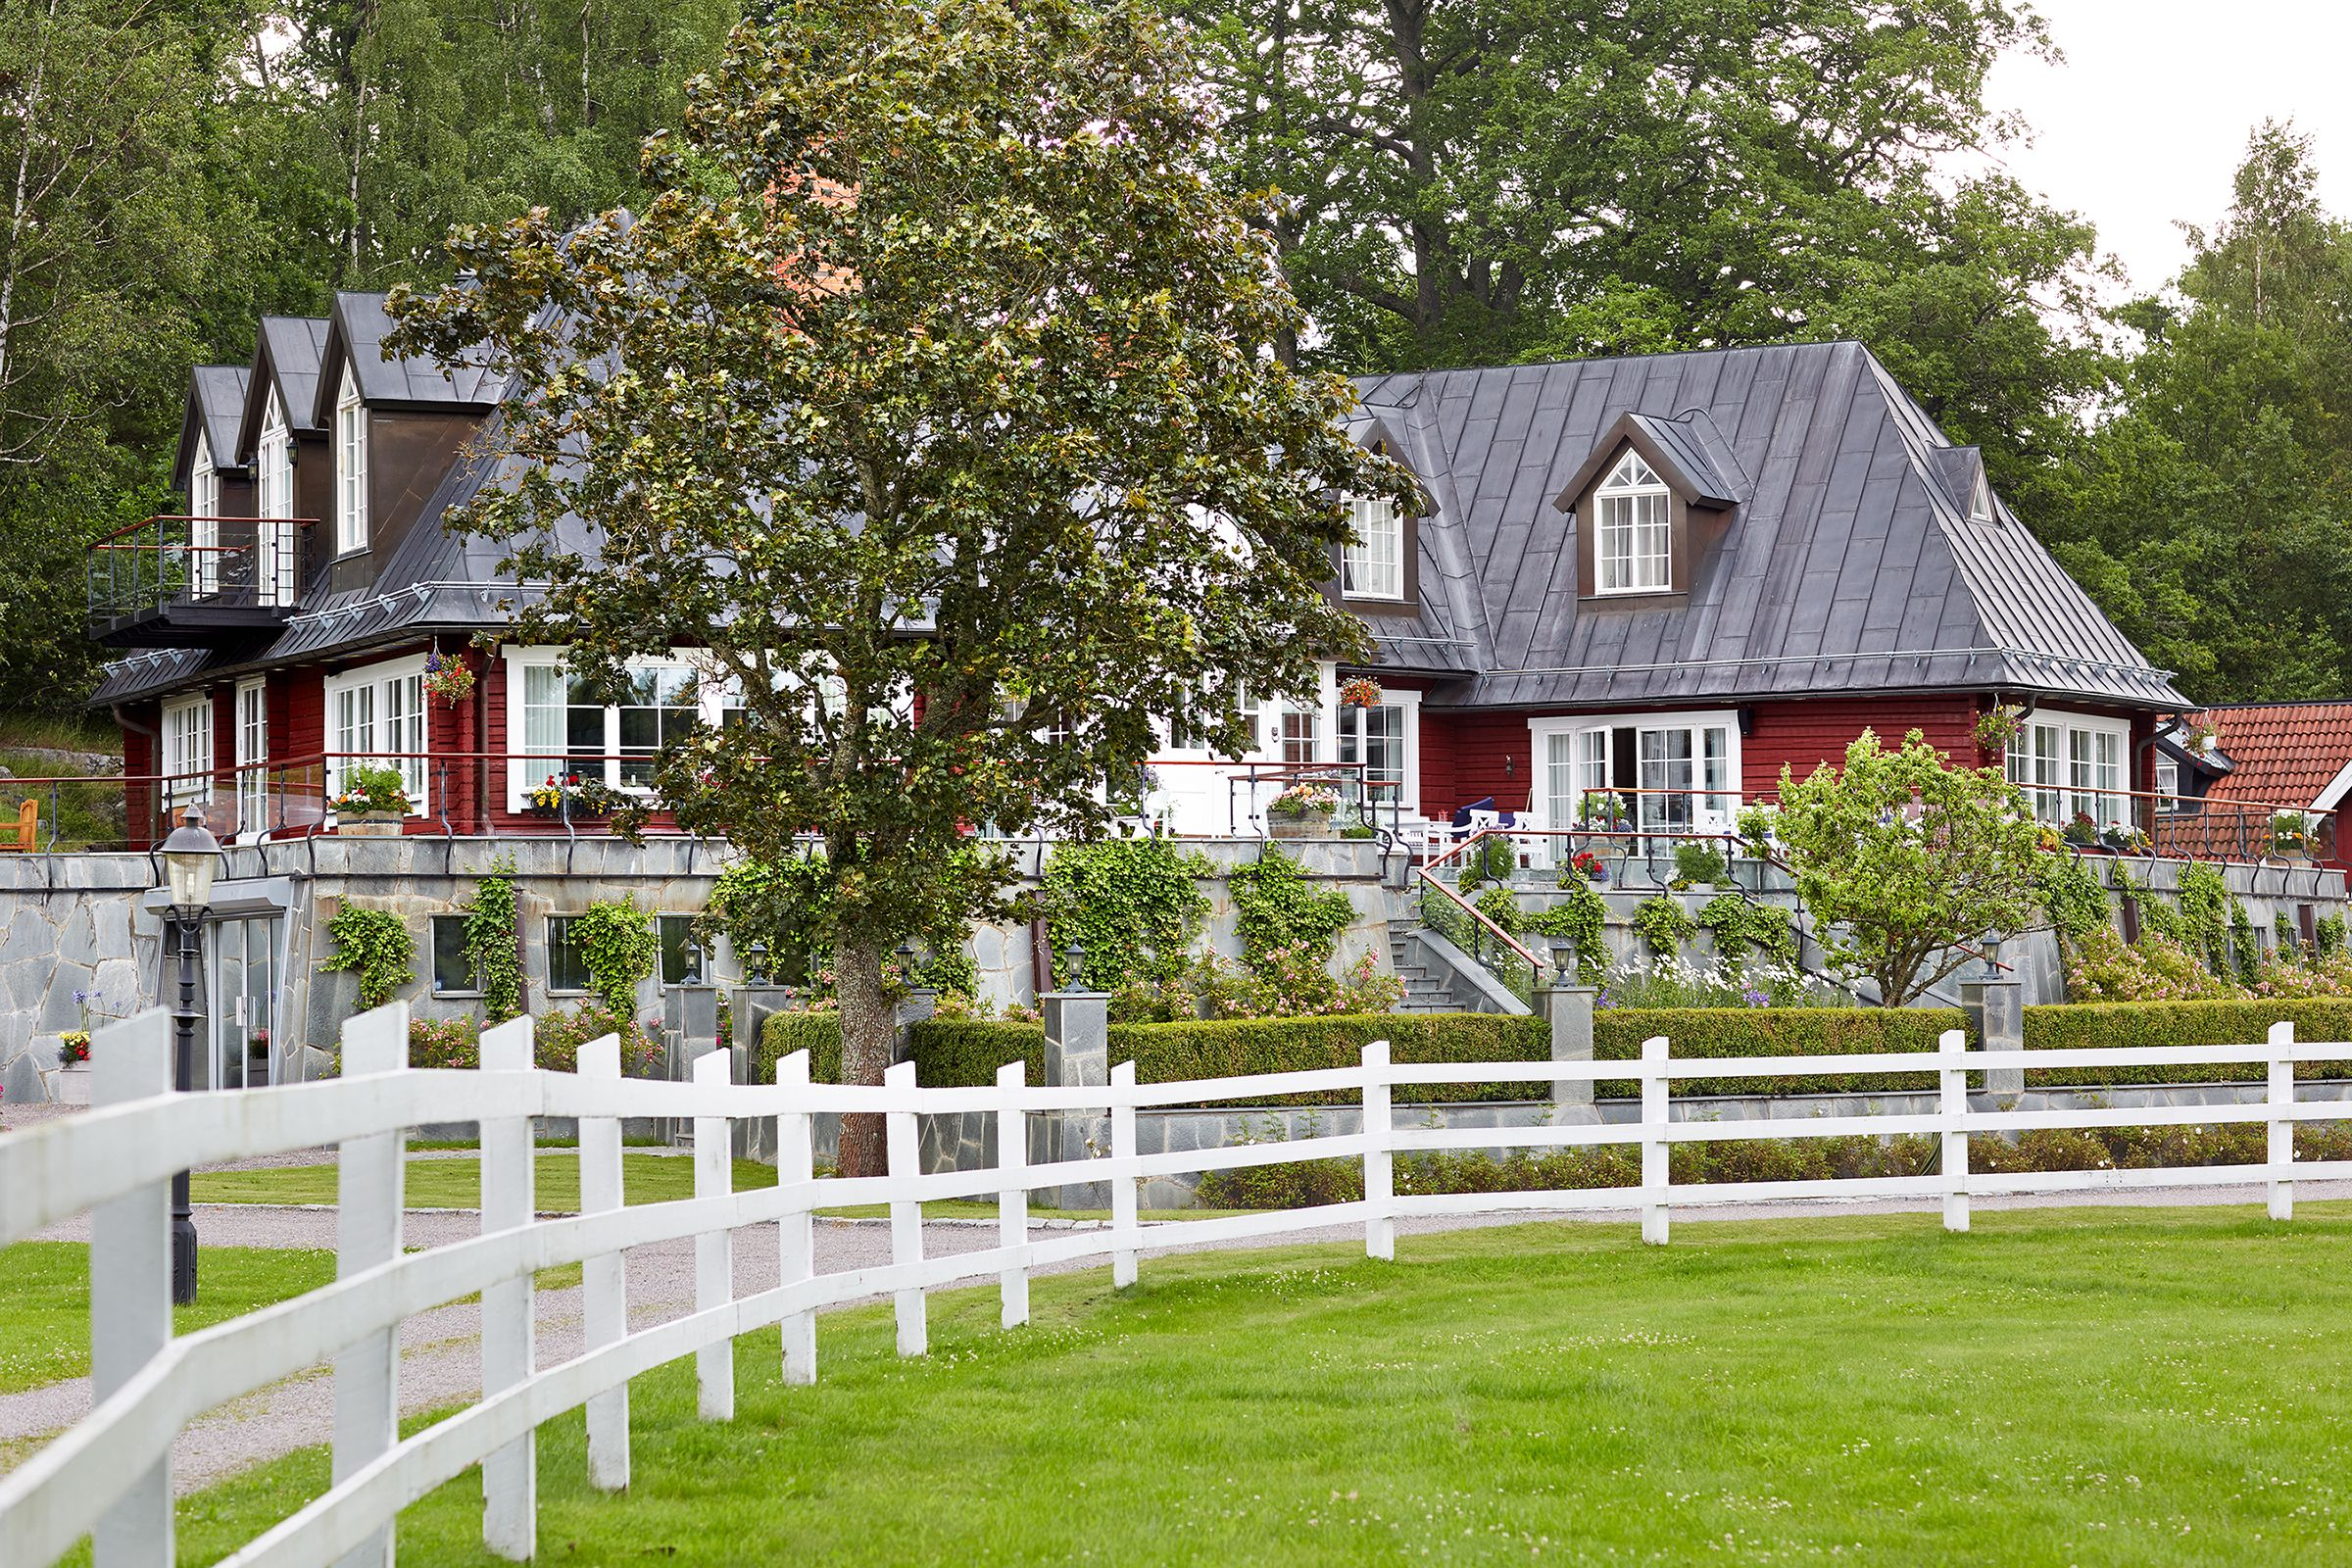 17 Backyard Privacy Fence Ideas That Enhance Safety In Style